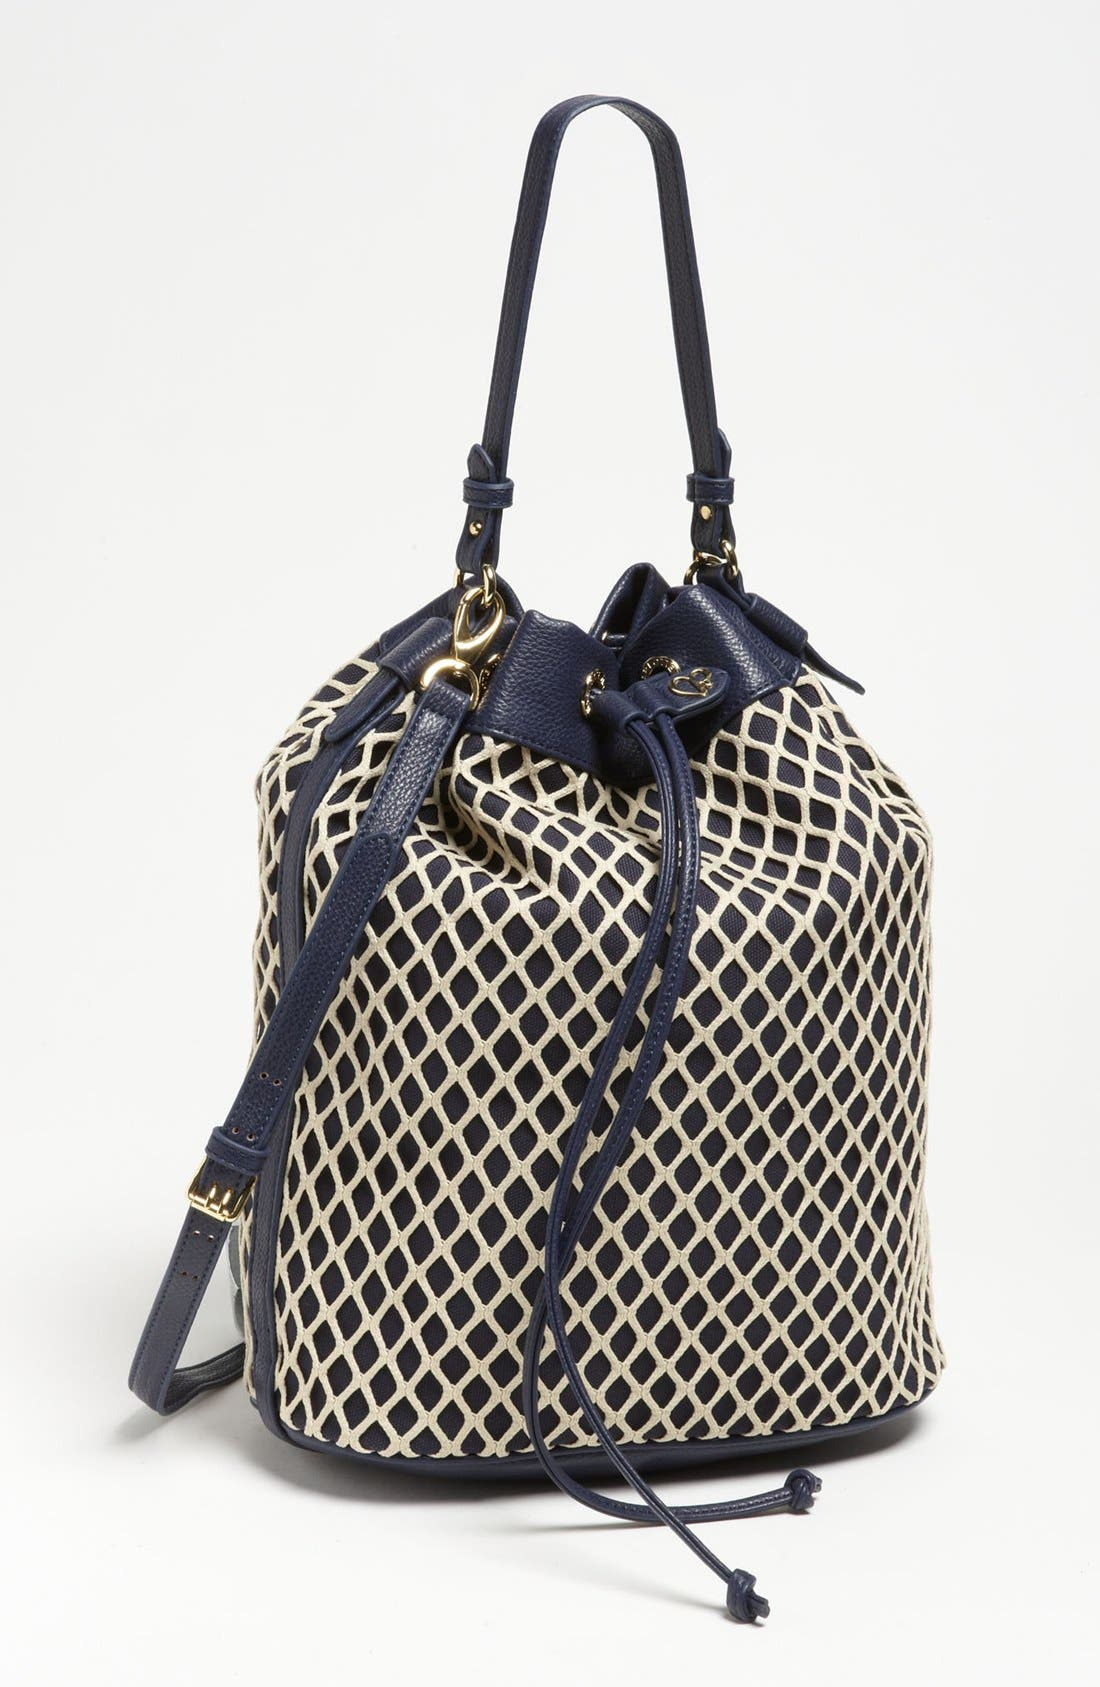 Alternate Image 1 Selected - Charlotte Ronson 'Marine' Drawstring Hobo